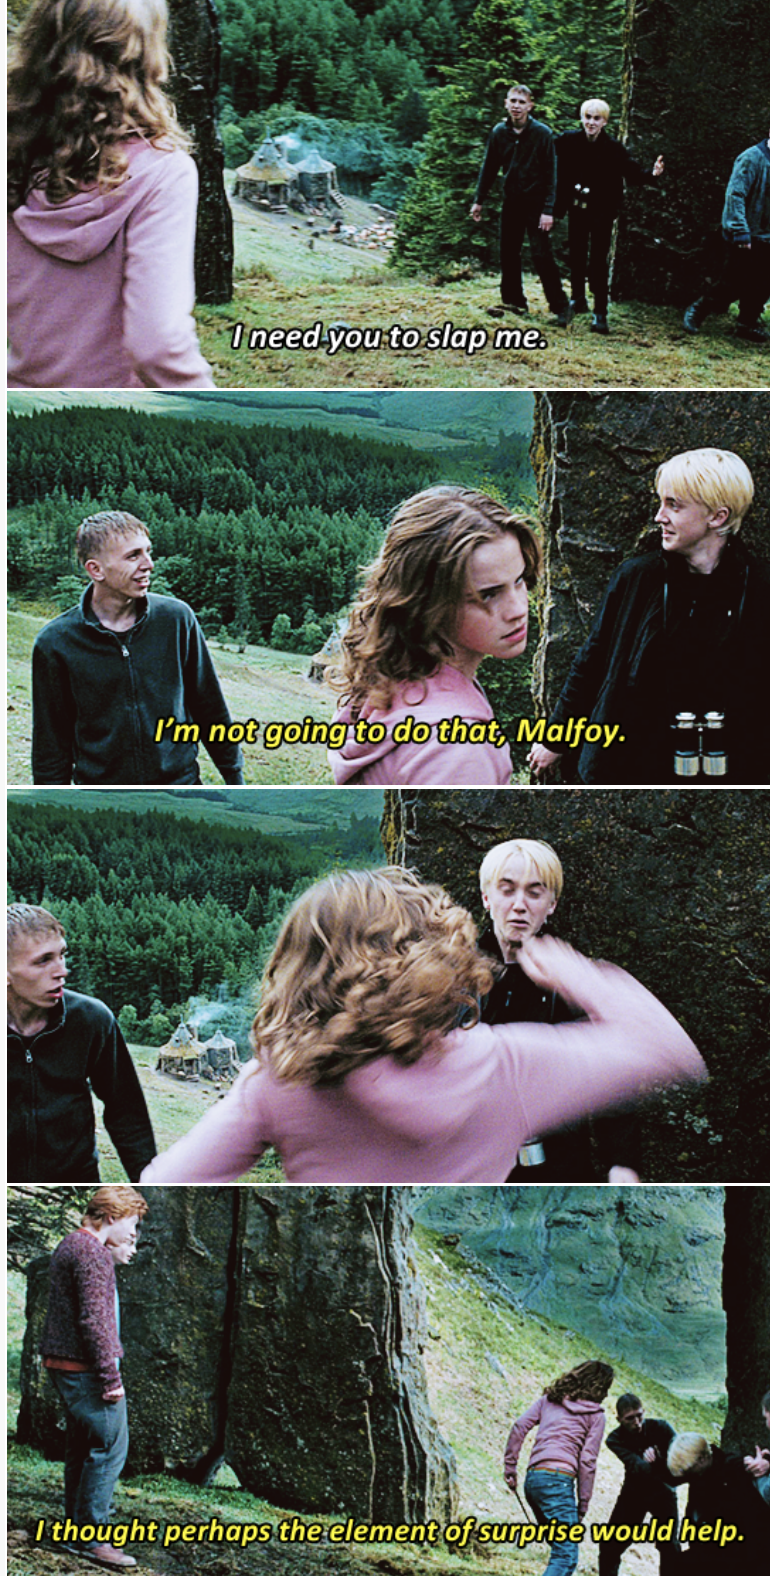 People in nature - 1need you to slap me I'm not going to do that, Malfoy. Ithought perhaps the element of surprise would help.